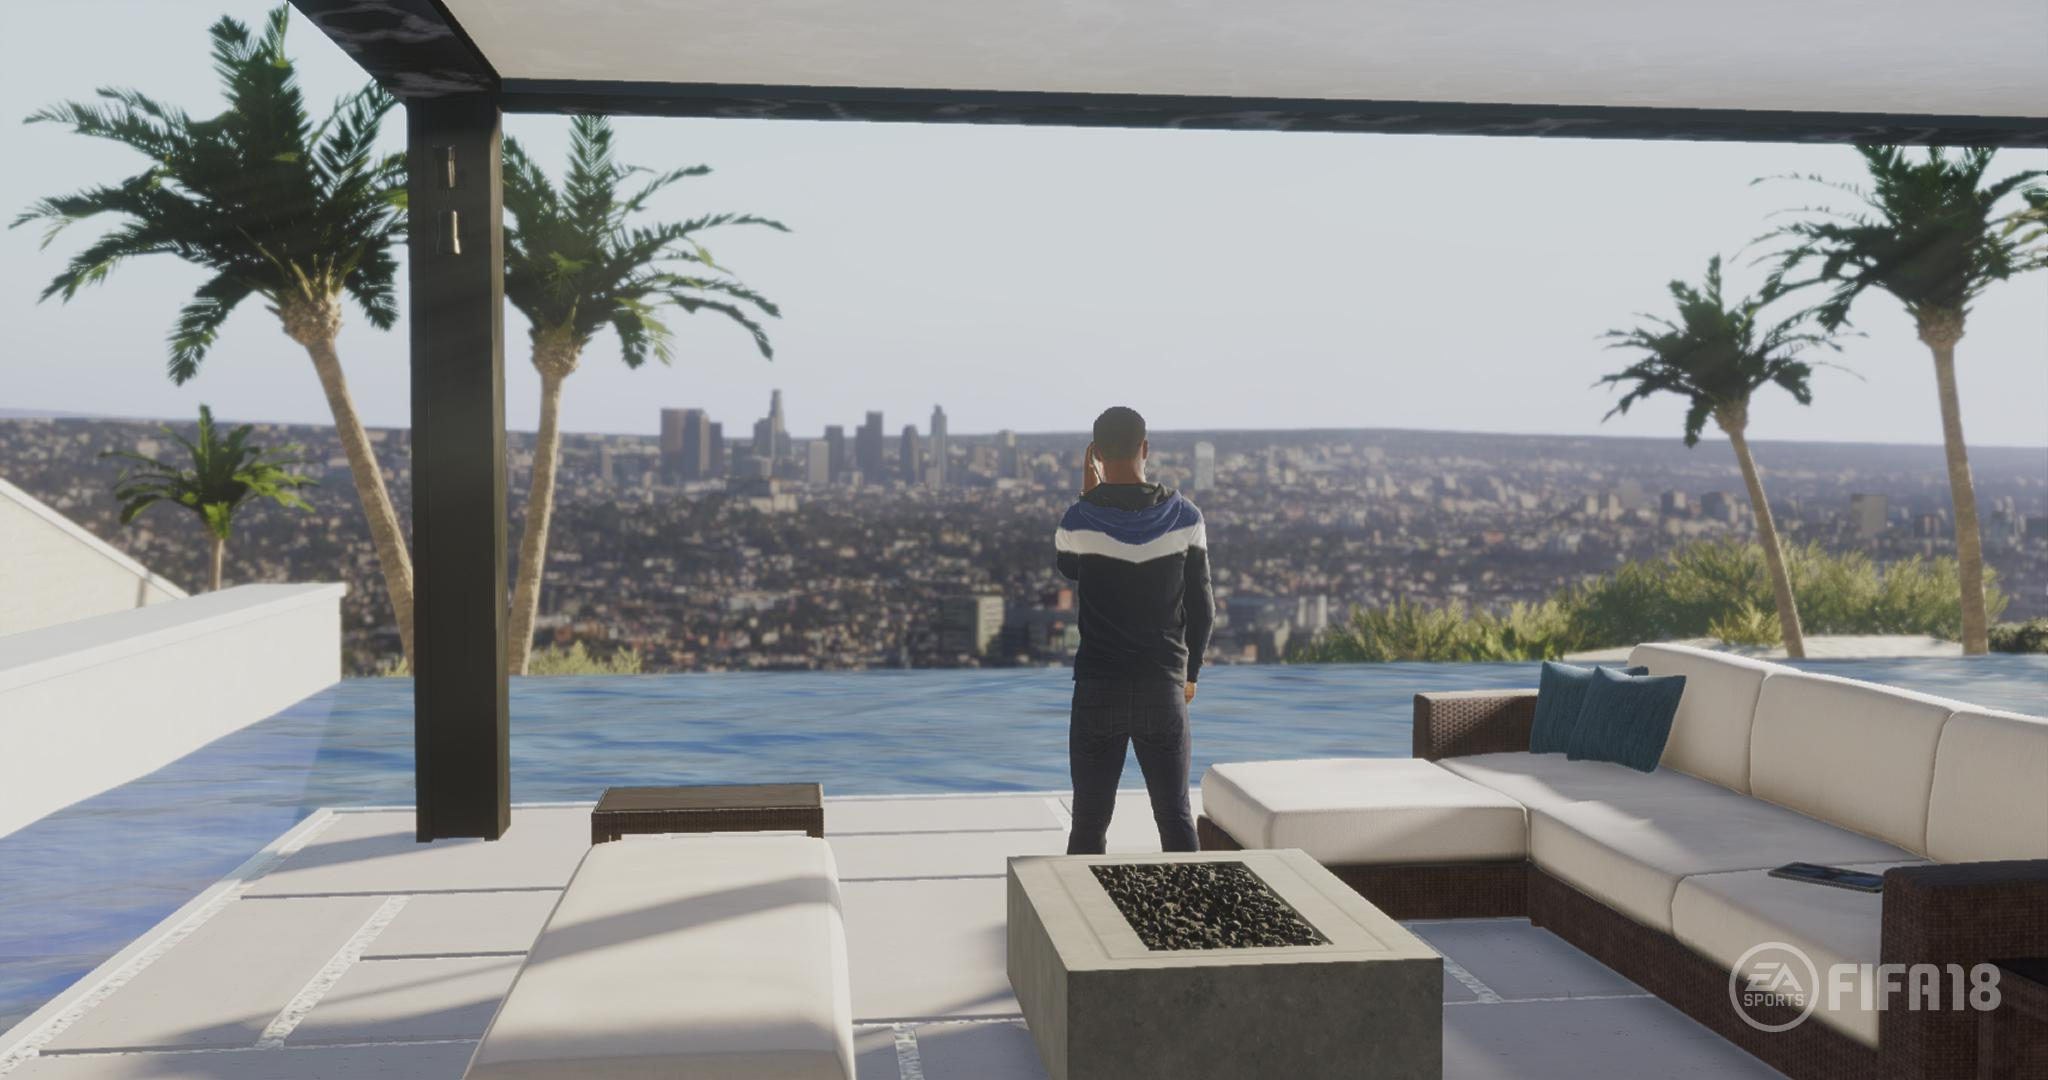 FIFA 18's The Journey will see Alex Hunter travel around the world